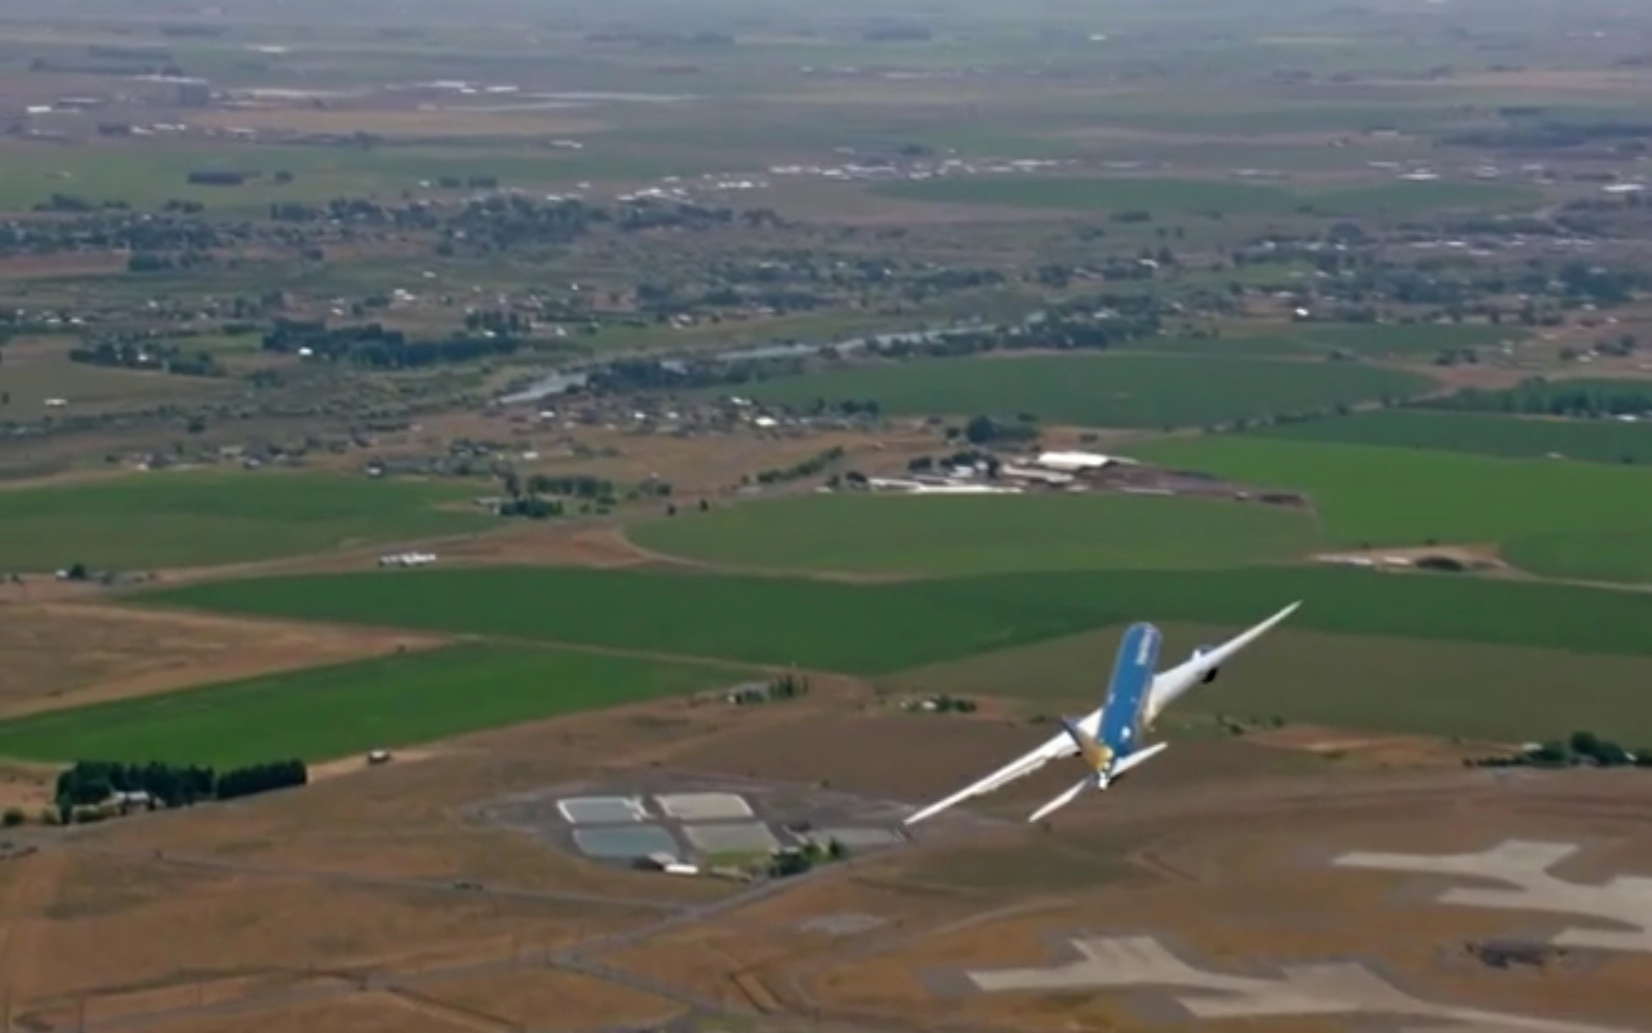 Boeing Dreamliner Demonstrates Nearly Vertical Takeoff